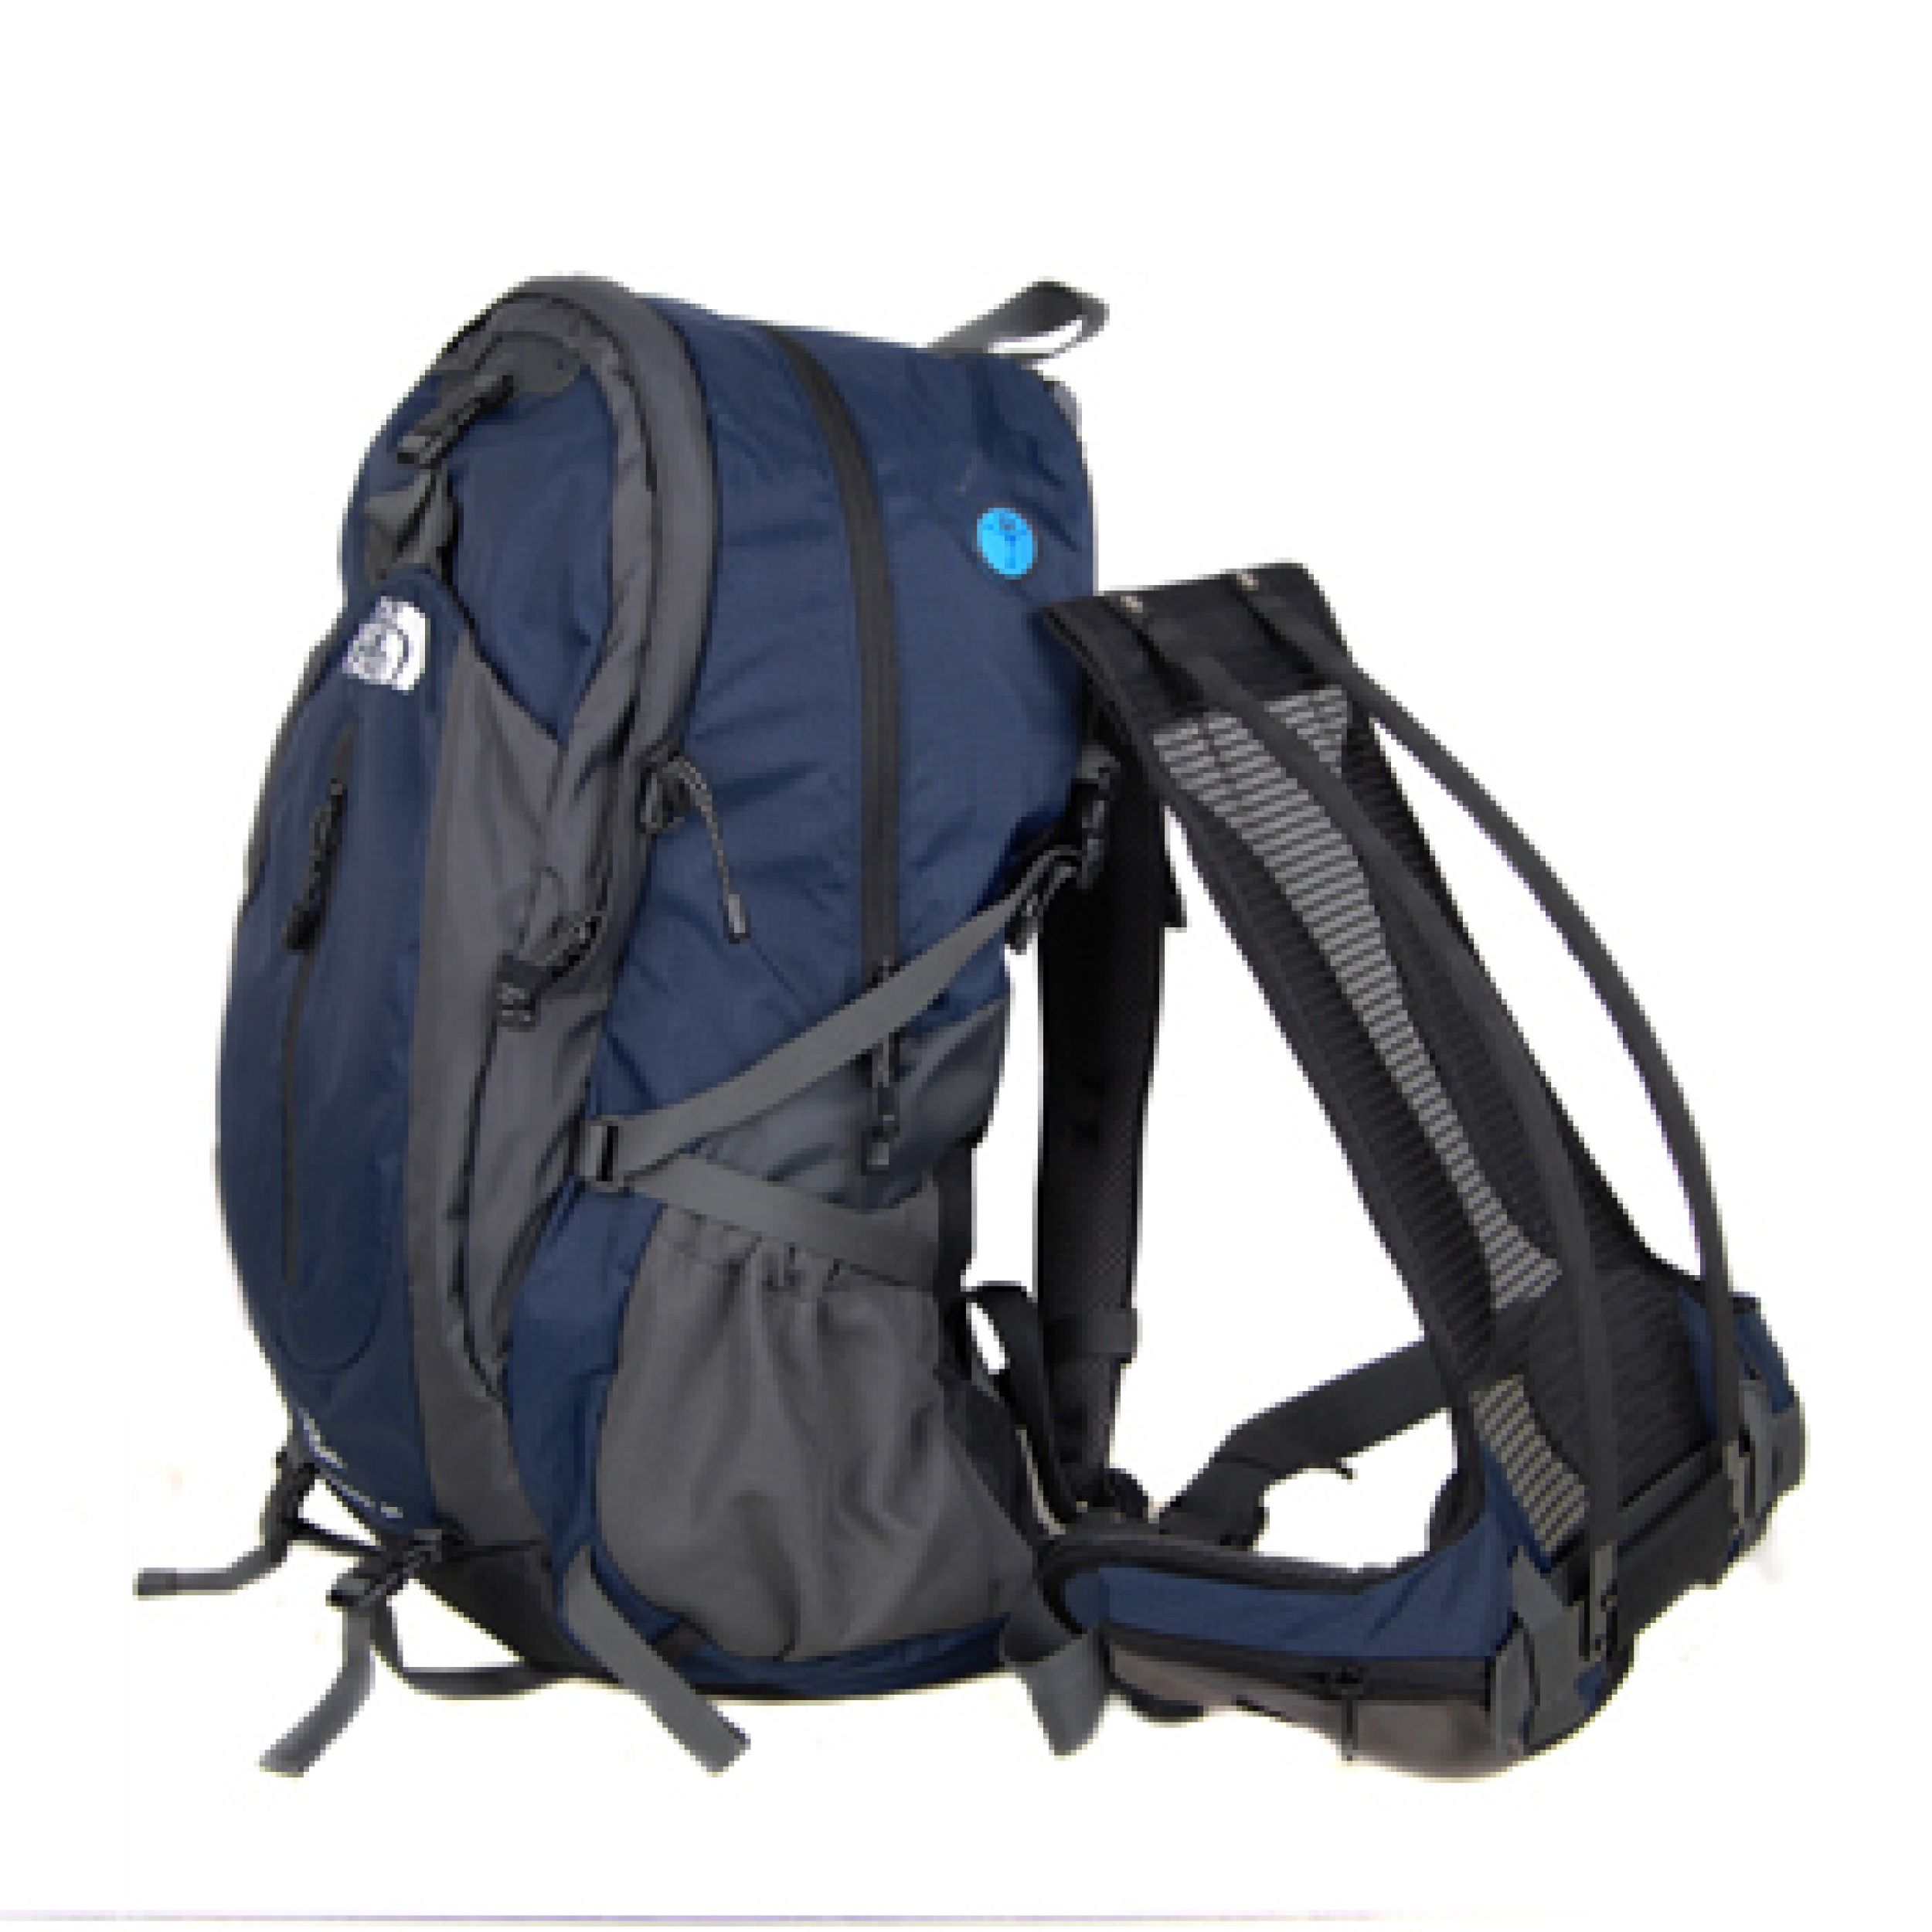 The_North_Face_Electron_40_Backpack__43_06_LRG.jpg